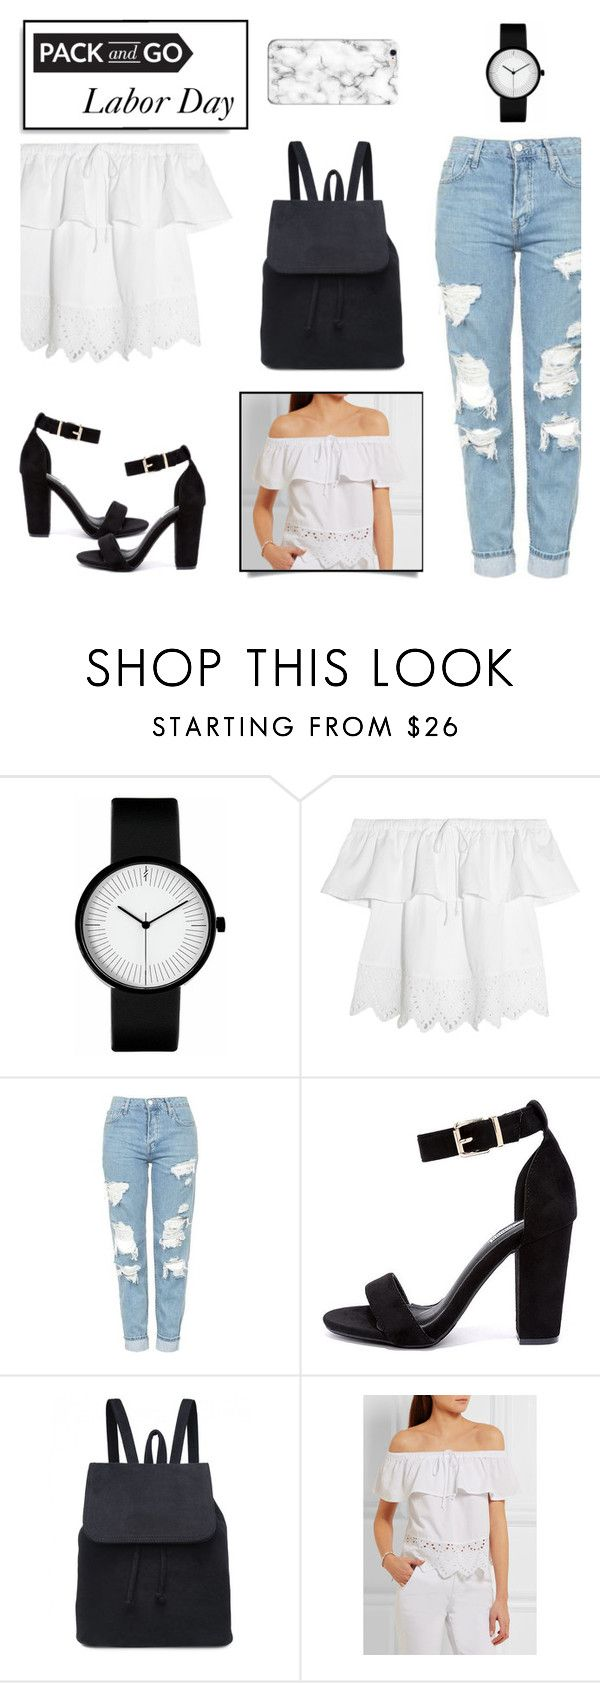 """""""Labor Day"""" by aggpap3 ❤ liked on Polyvore featuring Madewell, Topshop and Cape Robbin"""